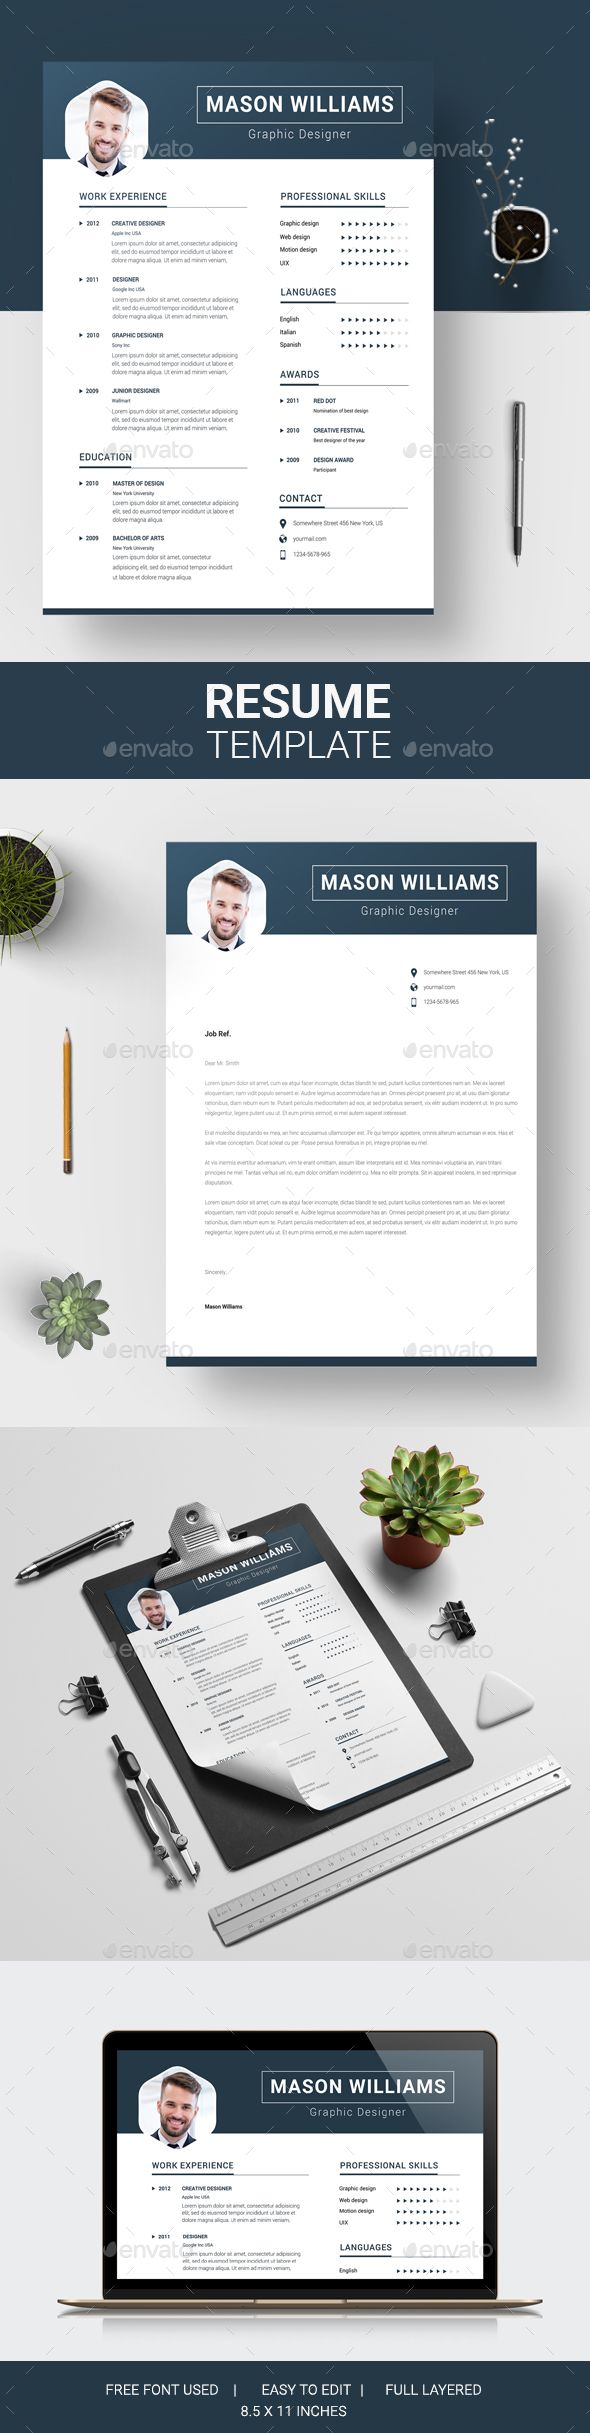 resume resumes stationery here graphicriver resume resumes stationery here graphicriver net